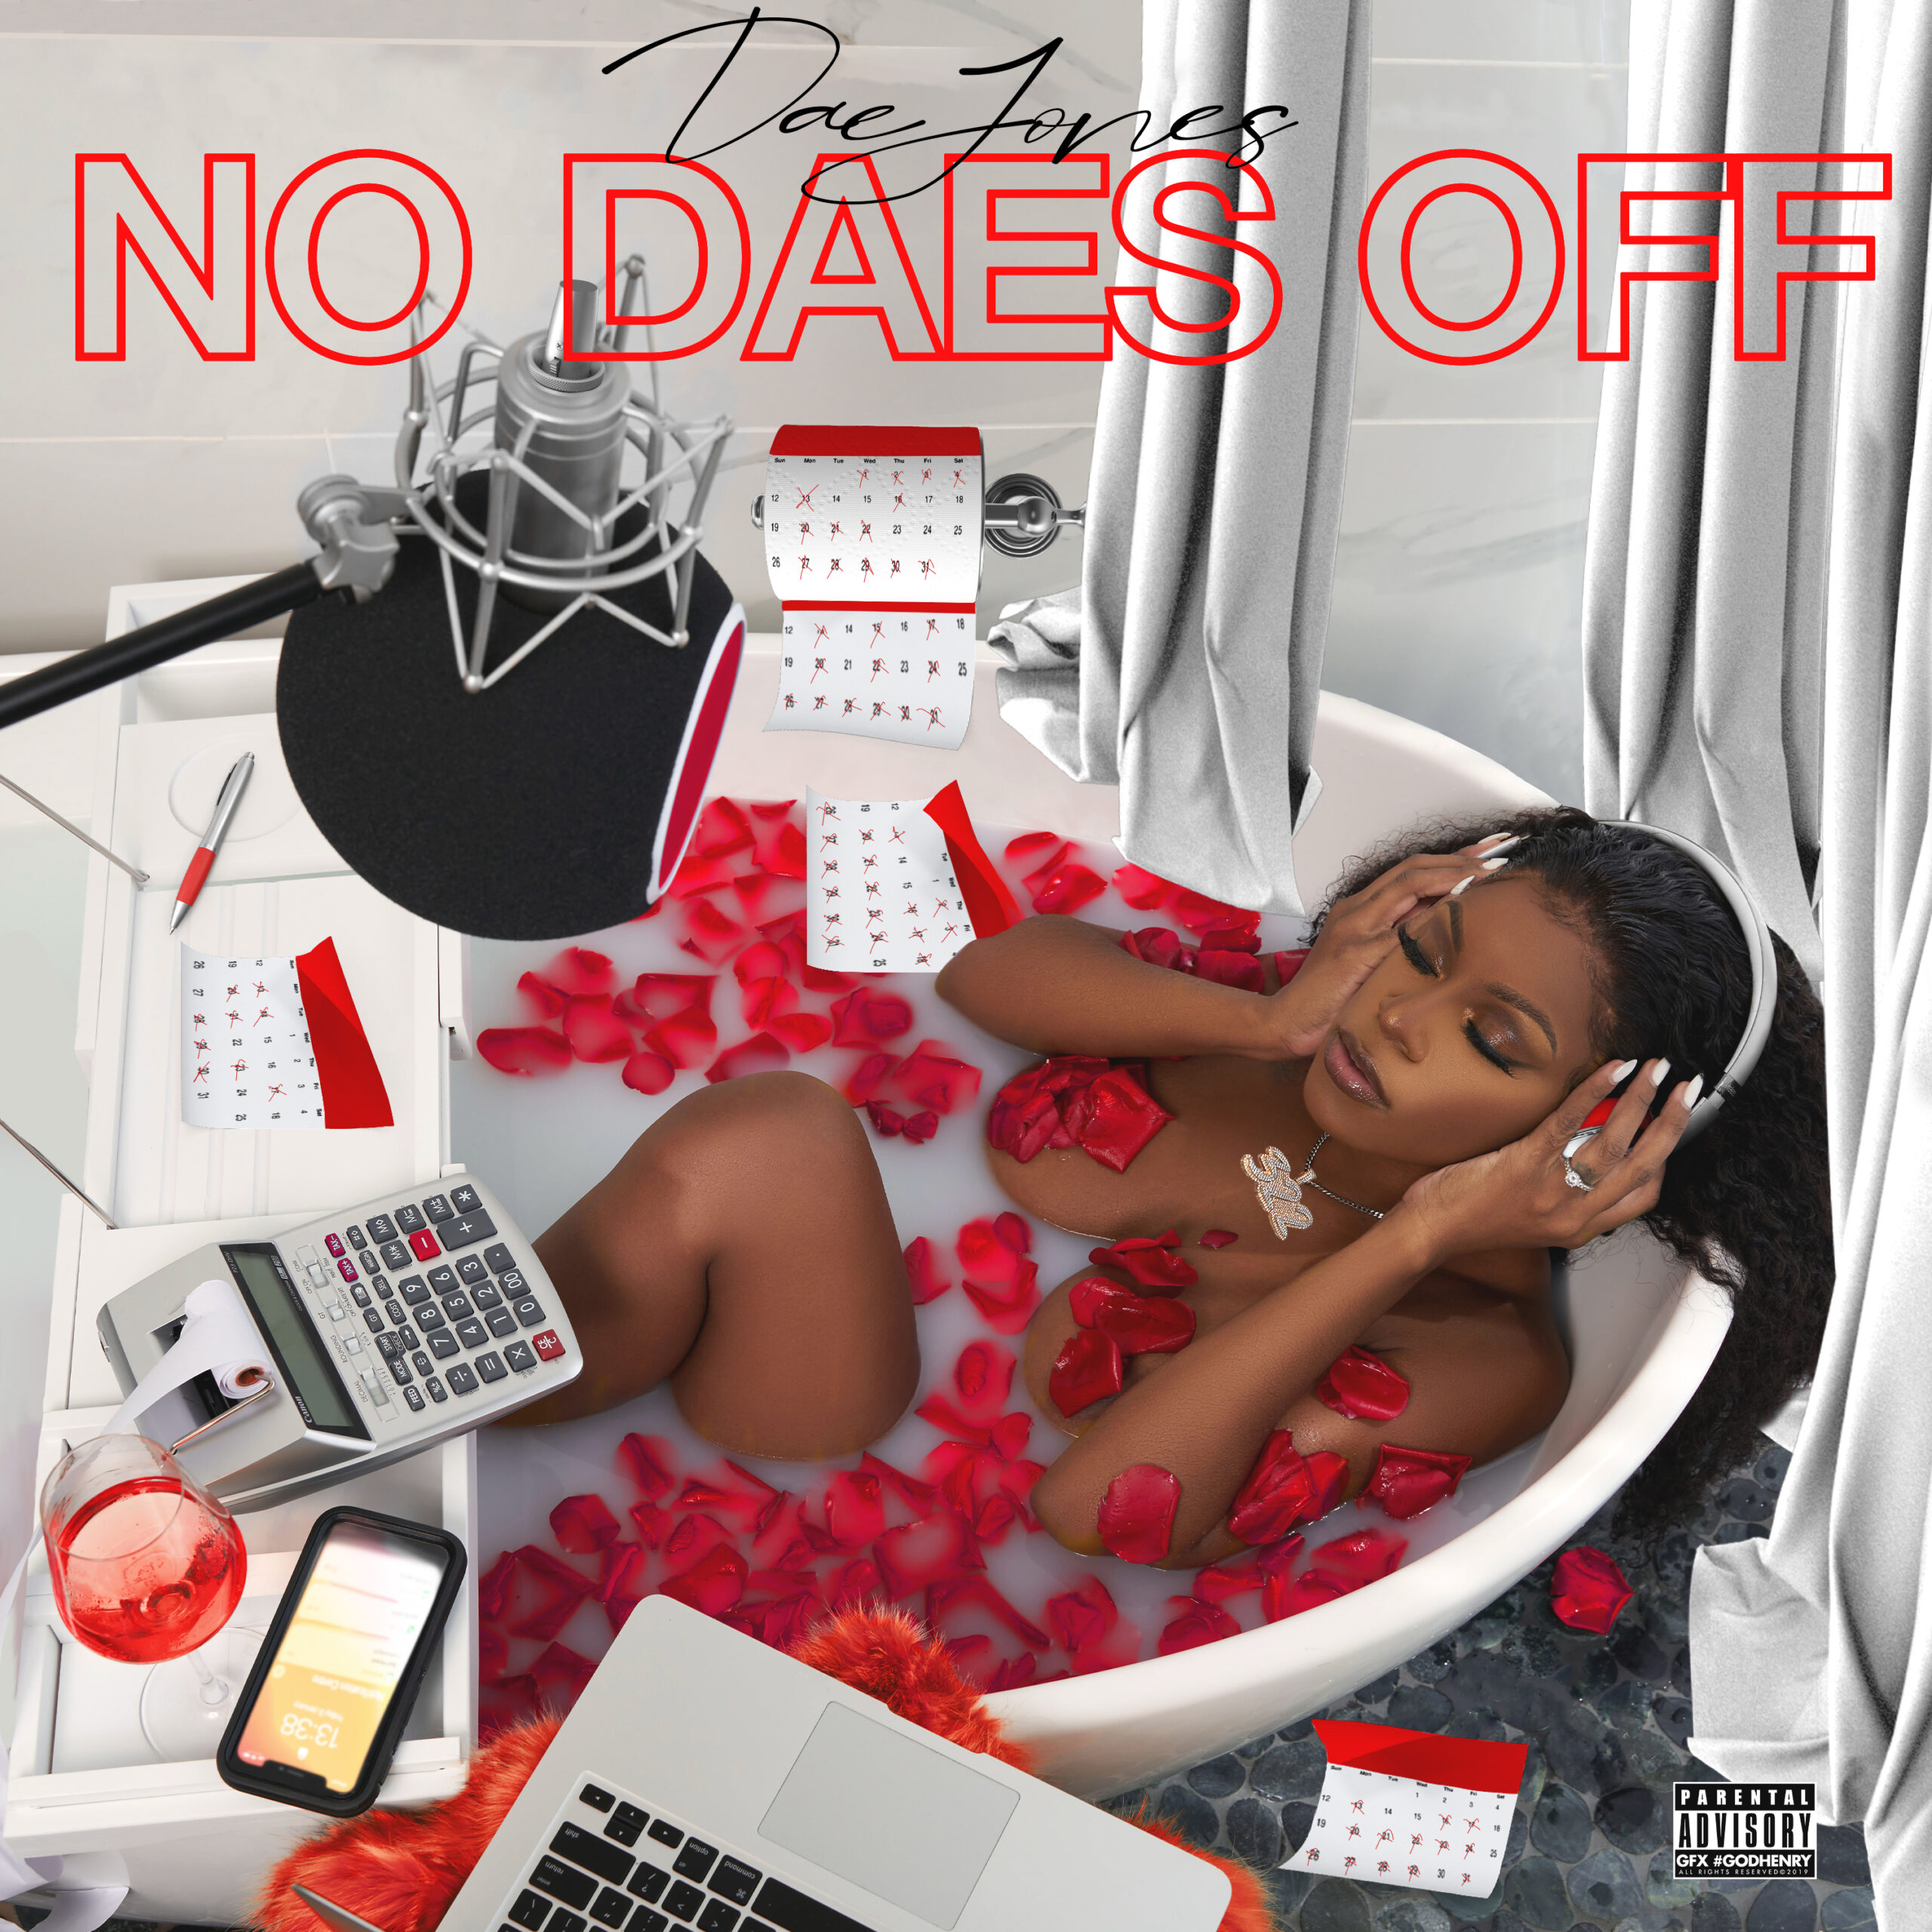 """Dae Jones sells her EP """" No Daes Off"""" for $100, is she the new Nipsey Hussle?"""